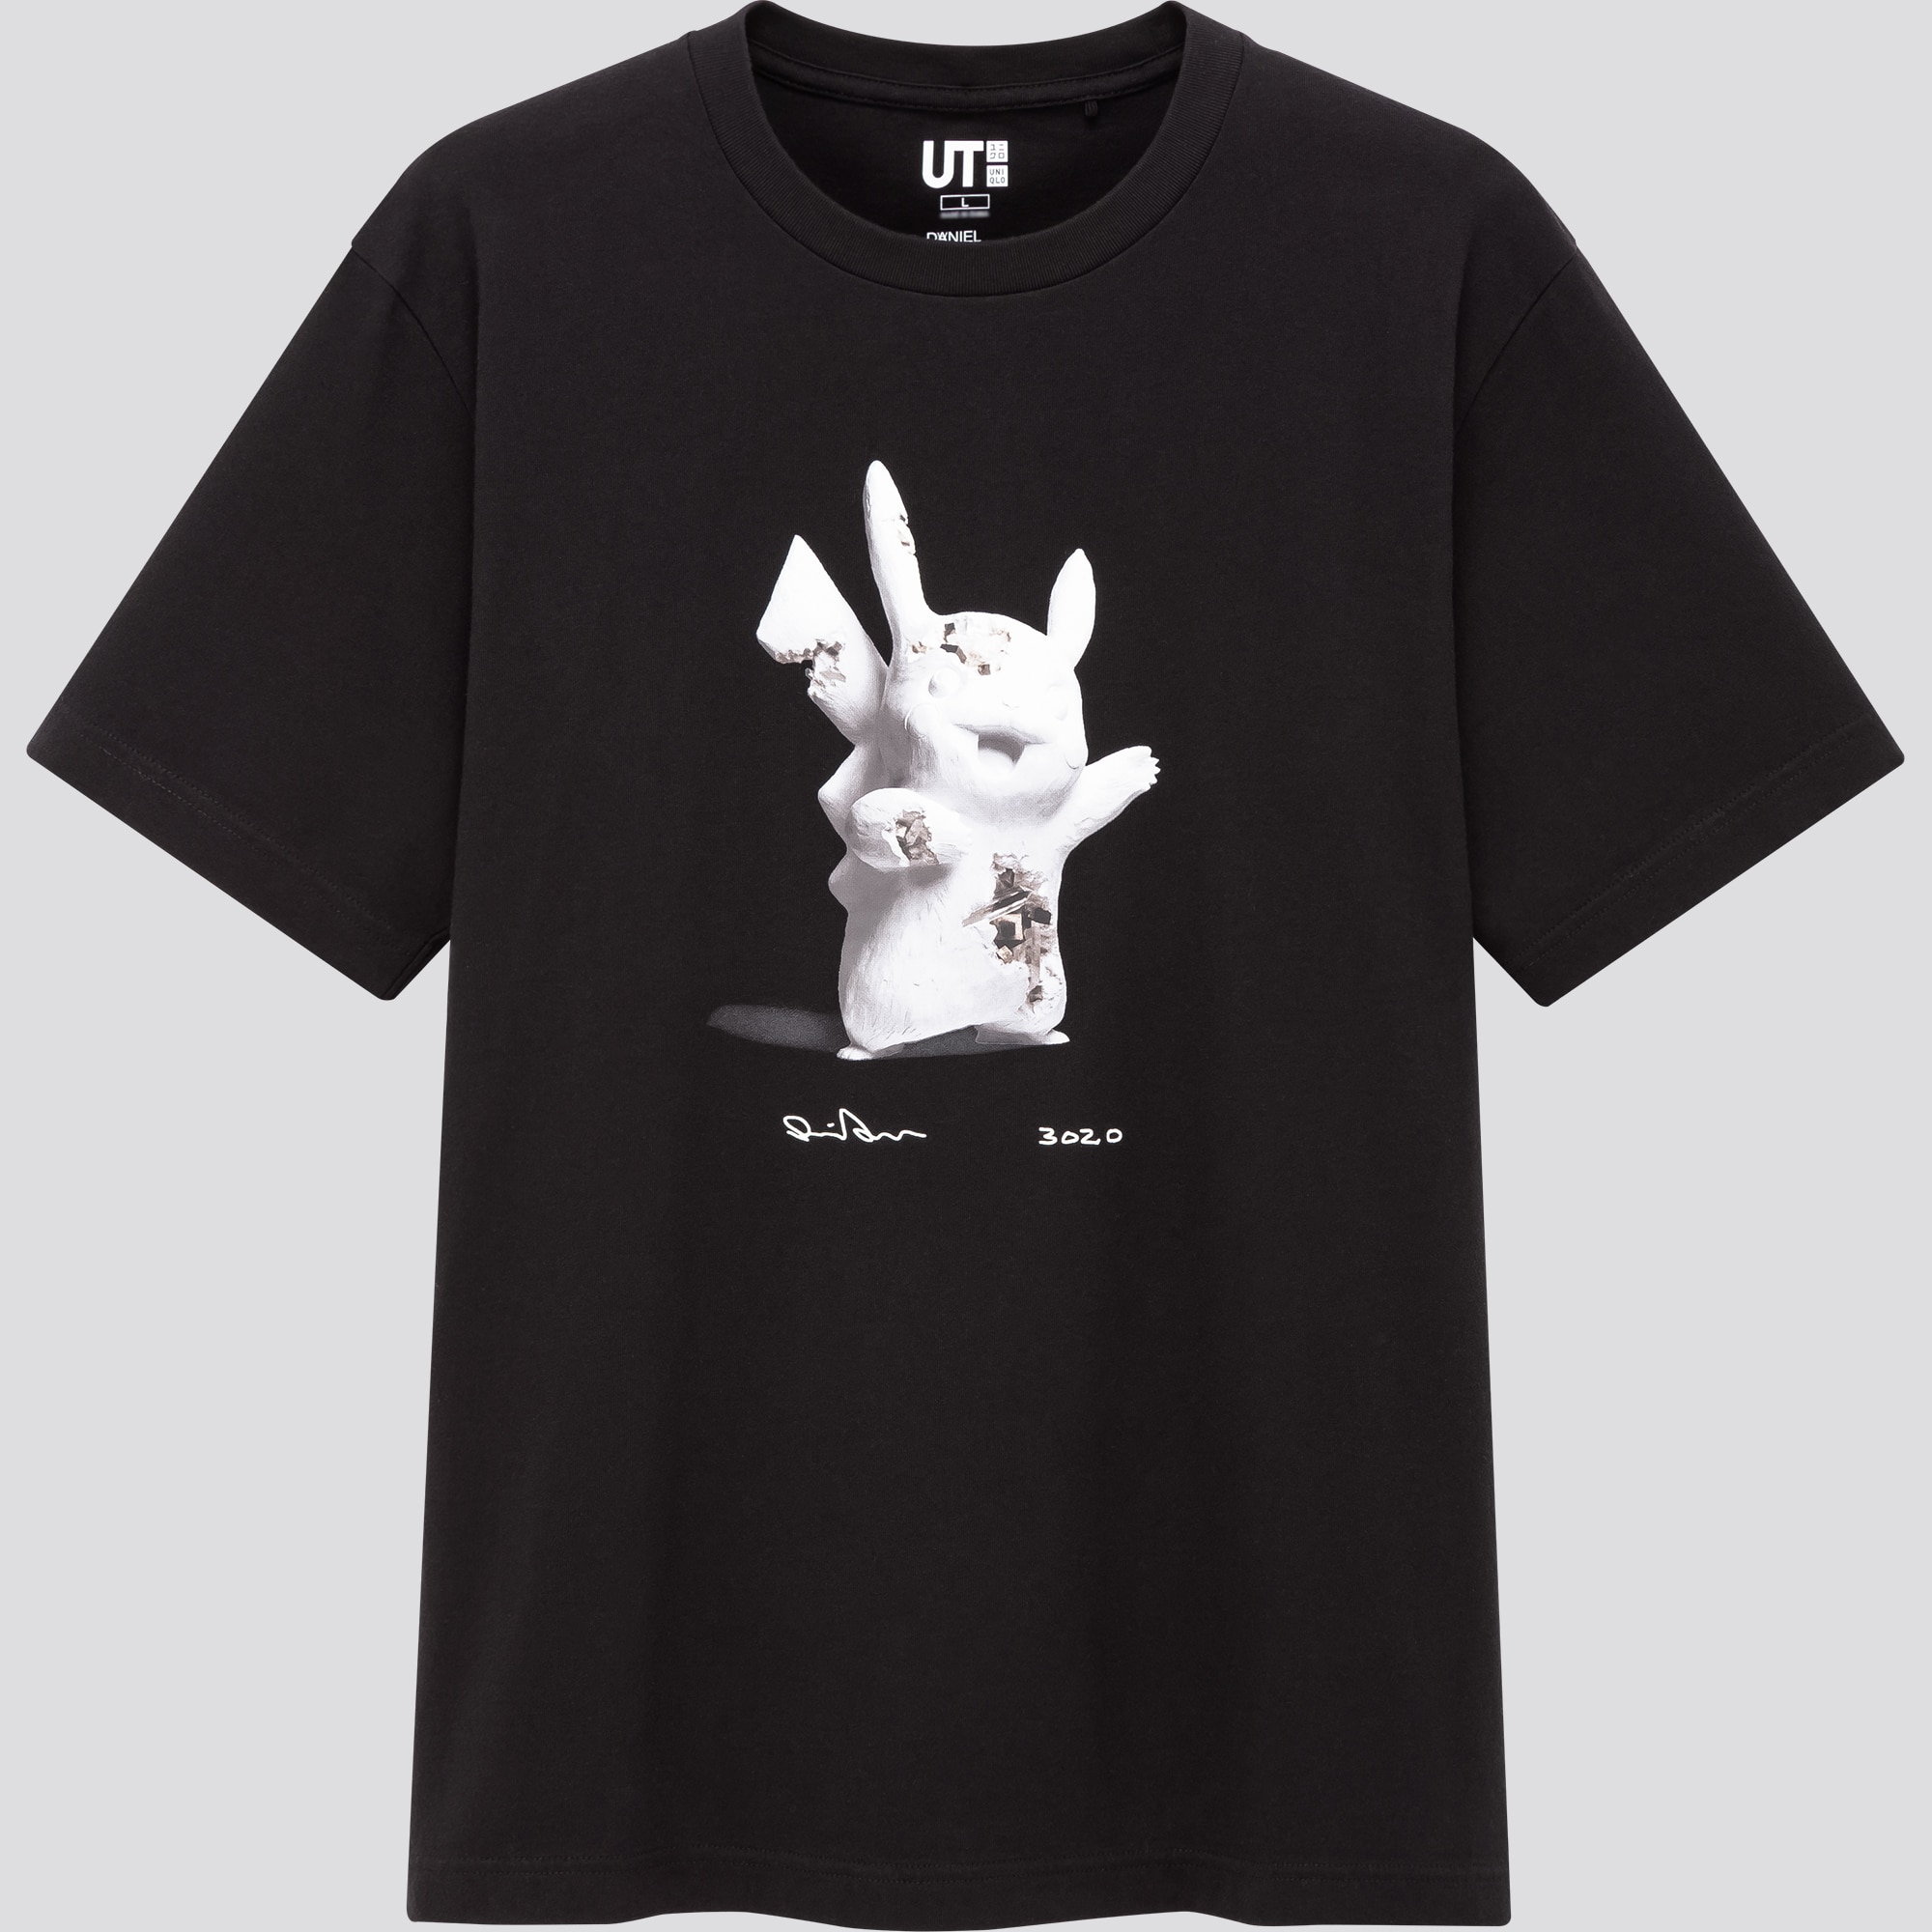 Uniqlo's Daniel Arsham x Pokémon t-shirts feature sketches of Pikachu, Mewtwo, & more 25